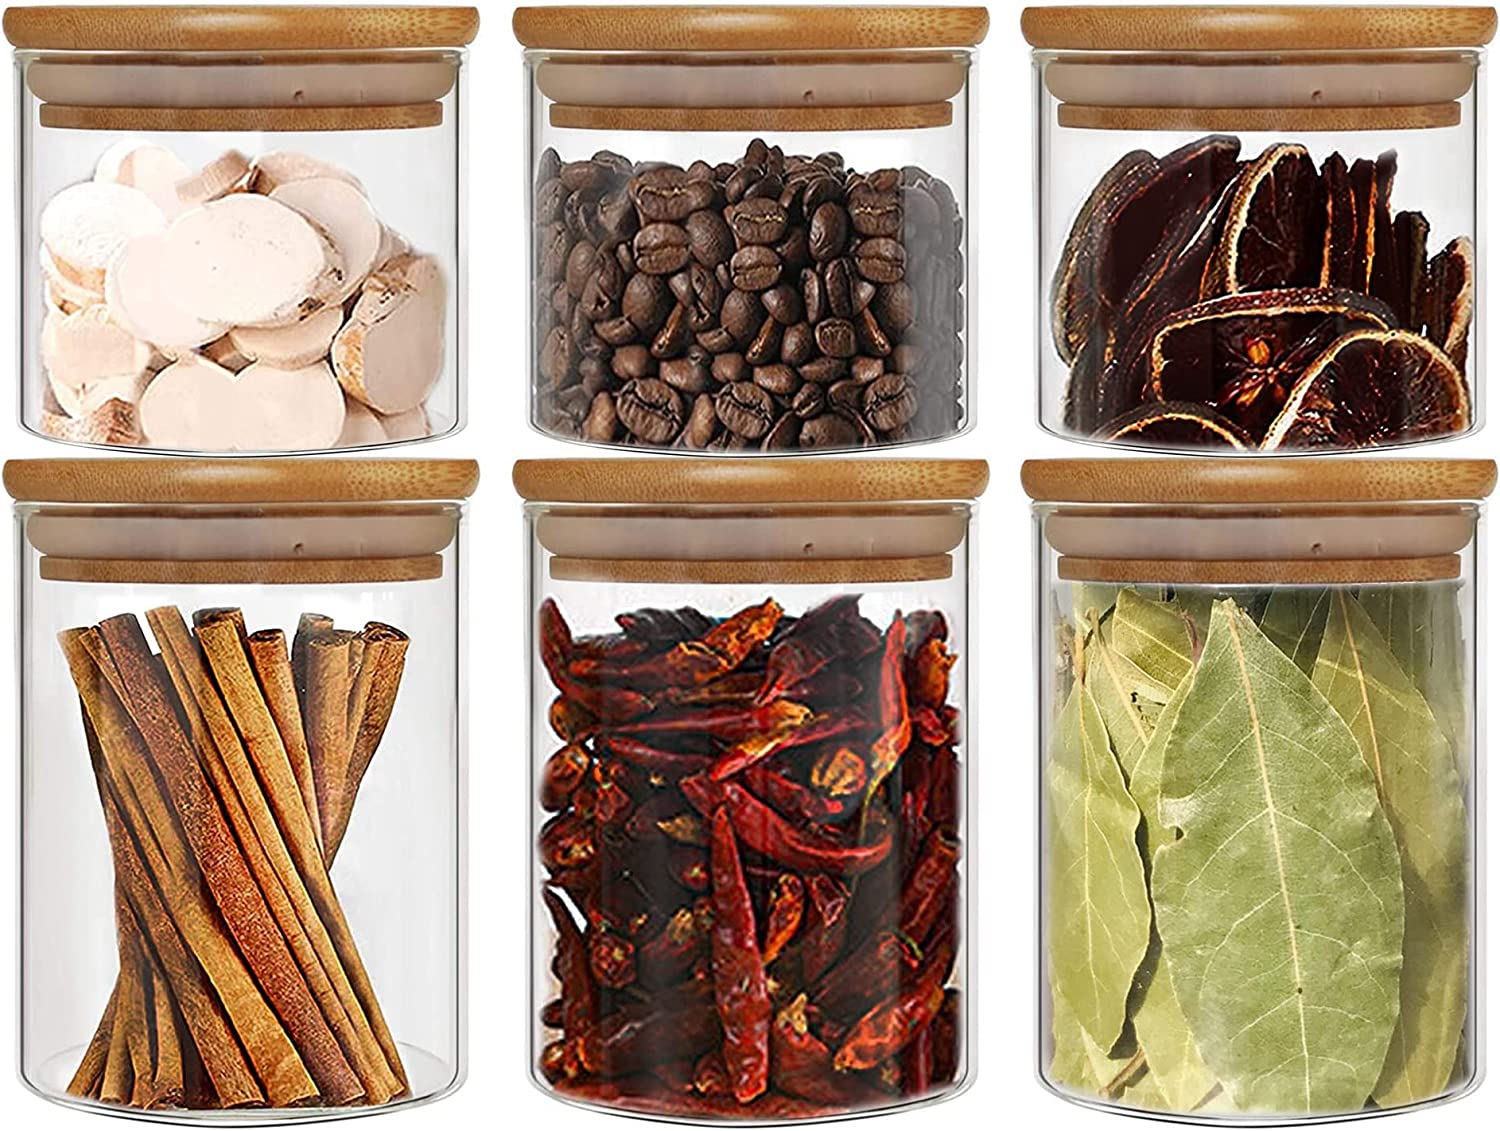 Max 54% OFF Moldiy Glass Food Storage Spring new work one after another Jars Airtight L with Bamboo Containers